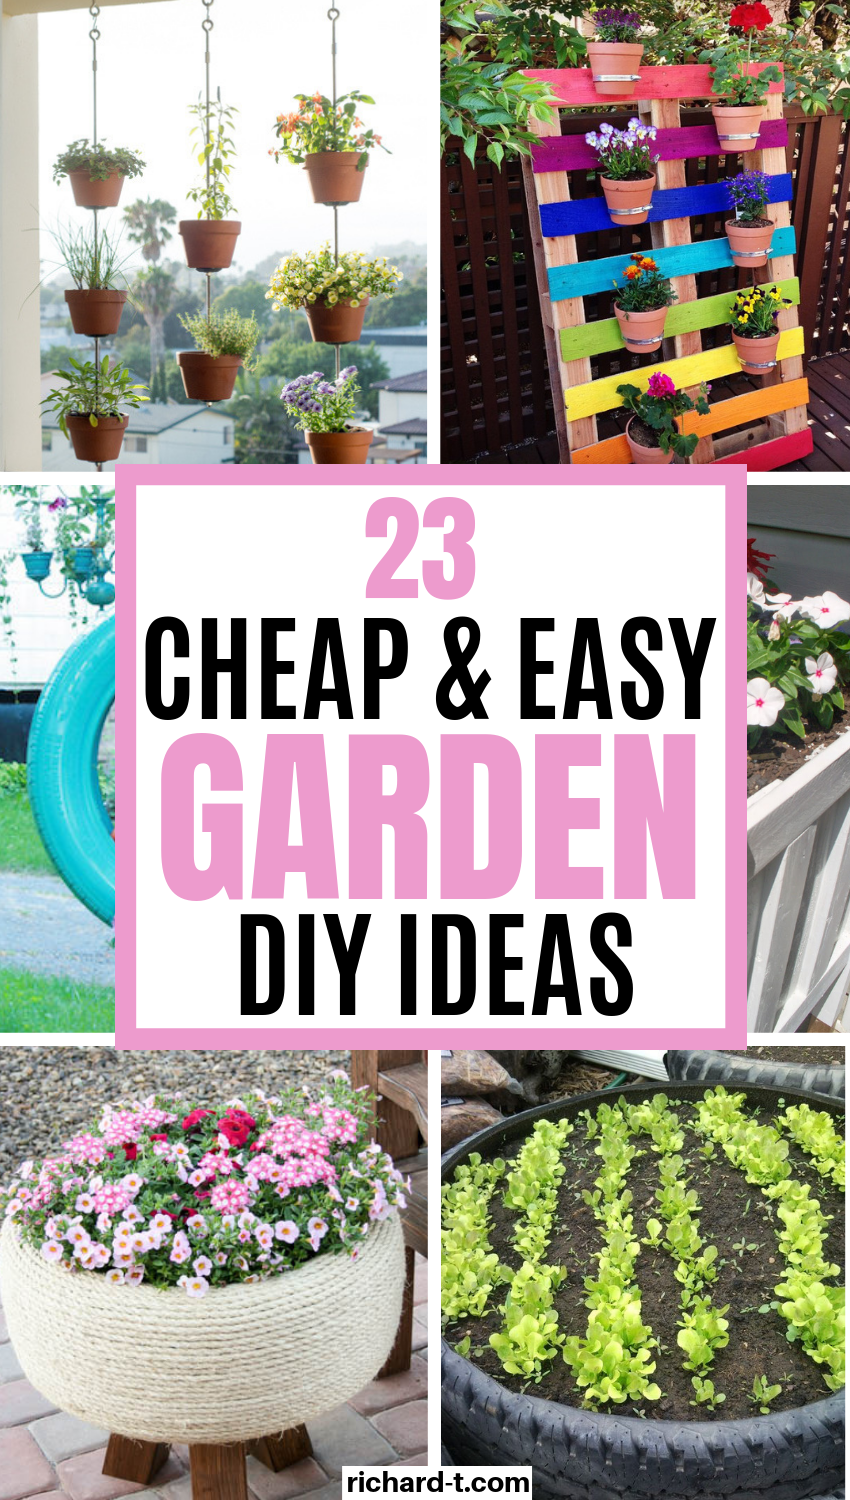 19 Awesome DIY garden ideas perfect for your home! Cheap, easy and